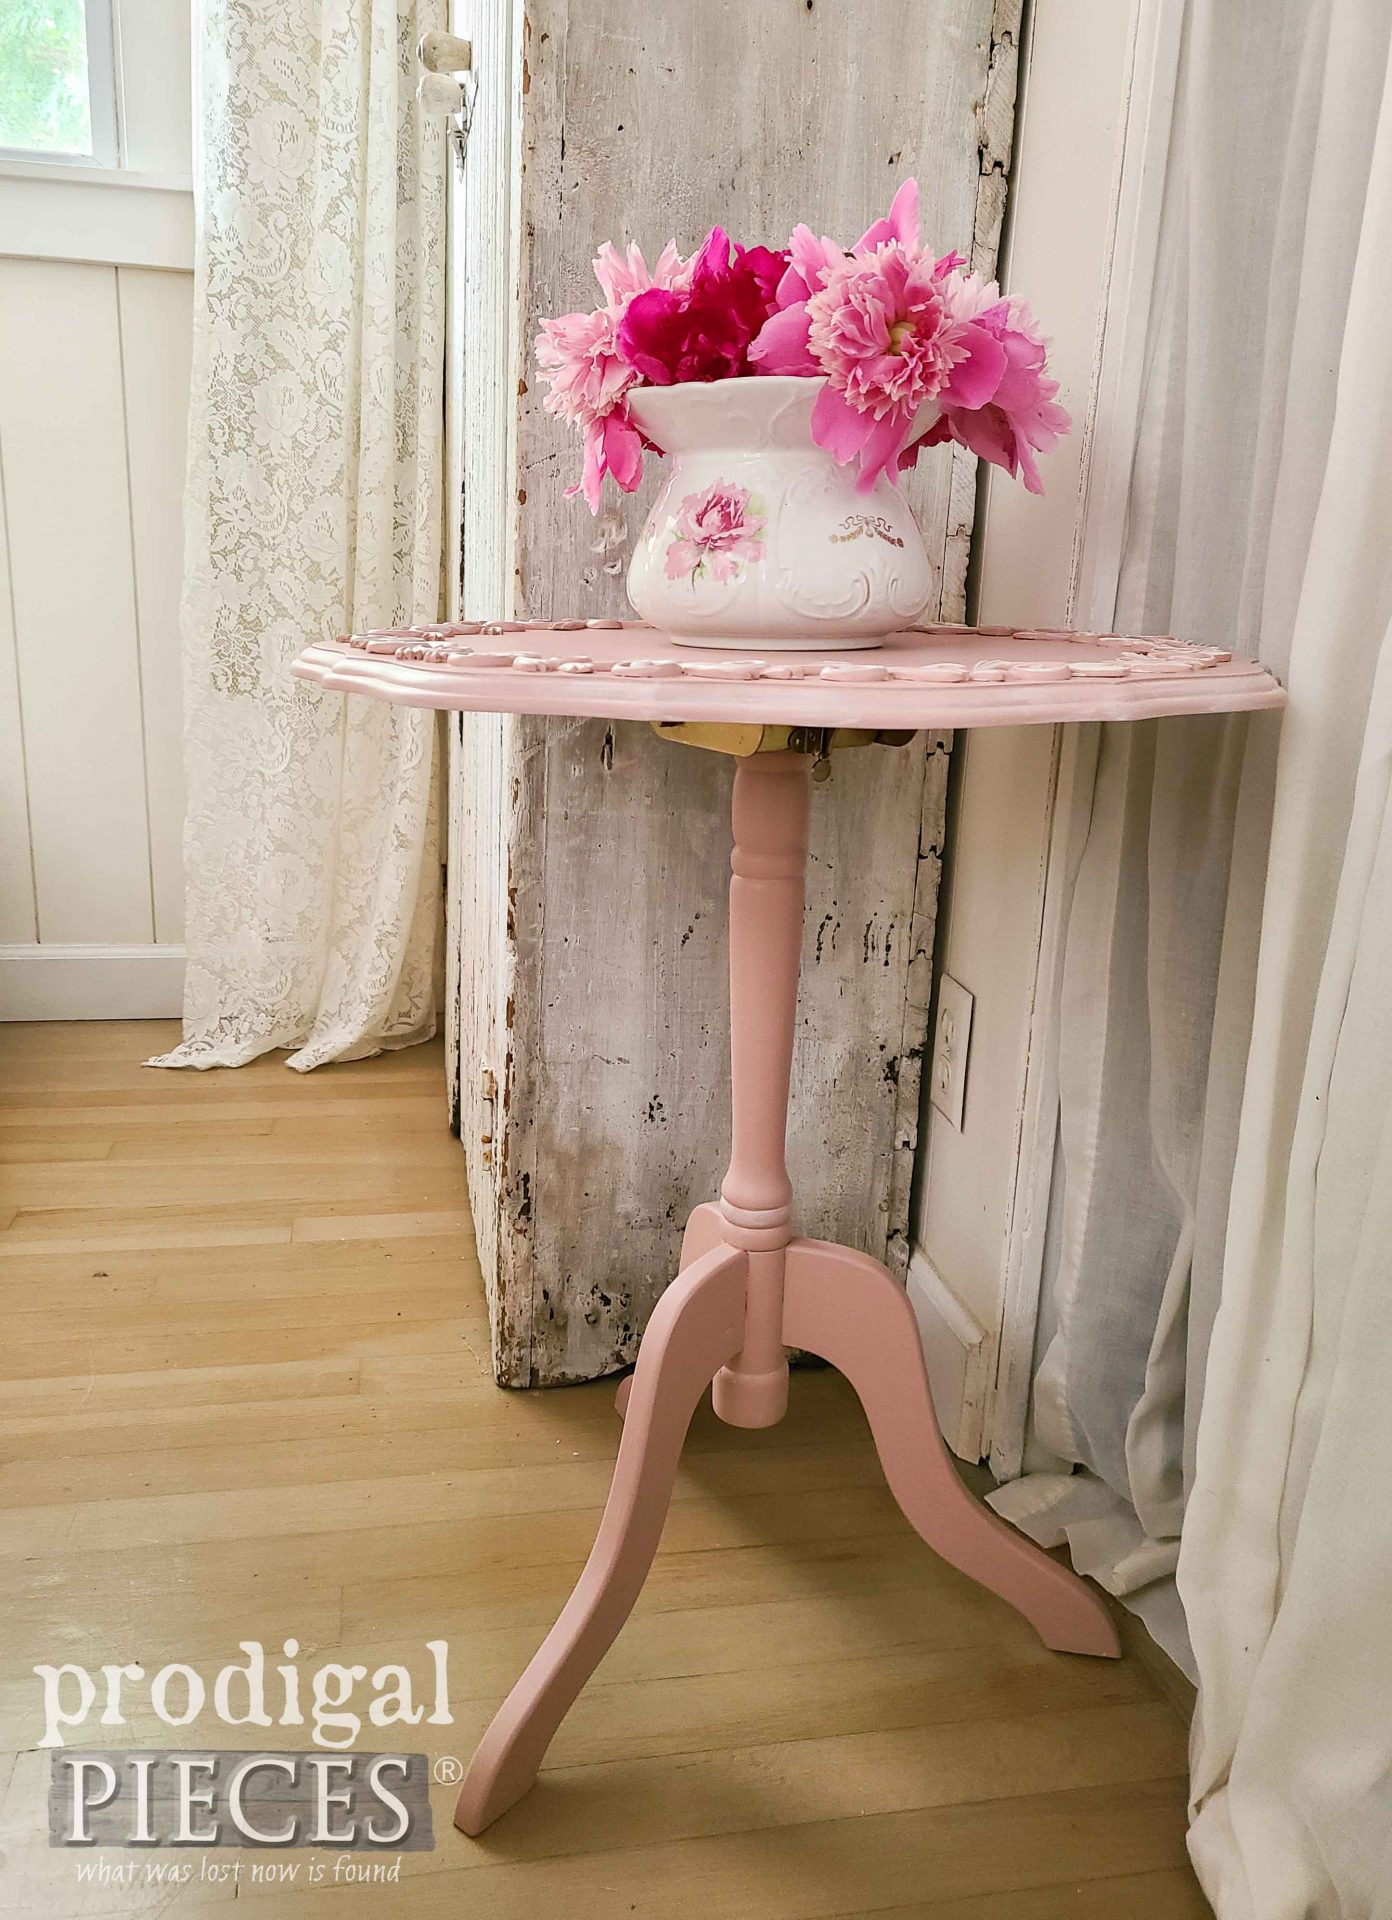 Pink Pedestal Table with Tilt Top by Prodigal PIeces | prodigalpieces.com #prodigalpieces #furniture #pink